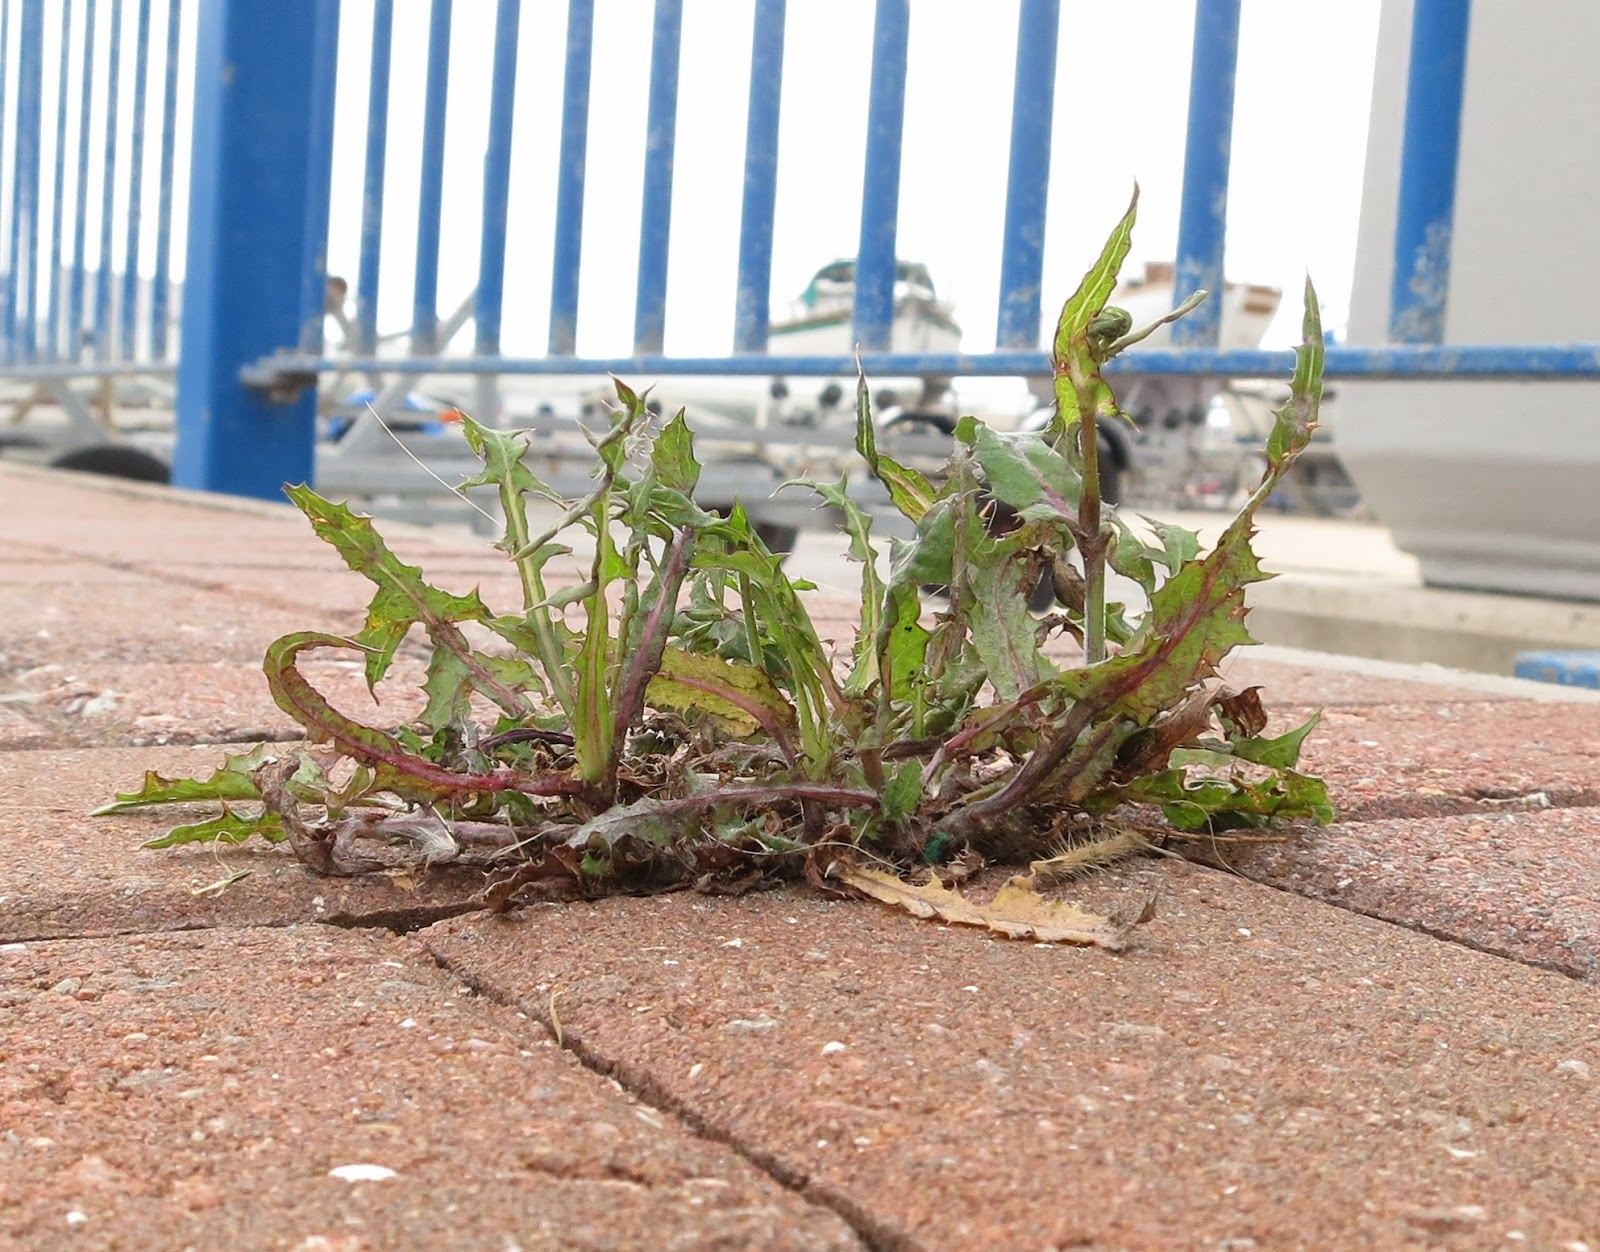 Sow Thistle growing through brick pavement in front of blue railings